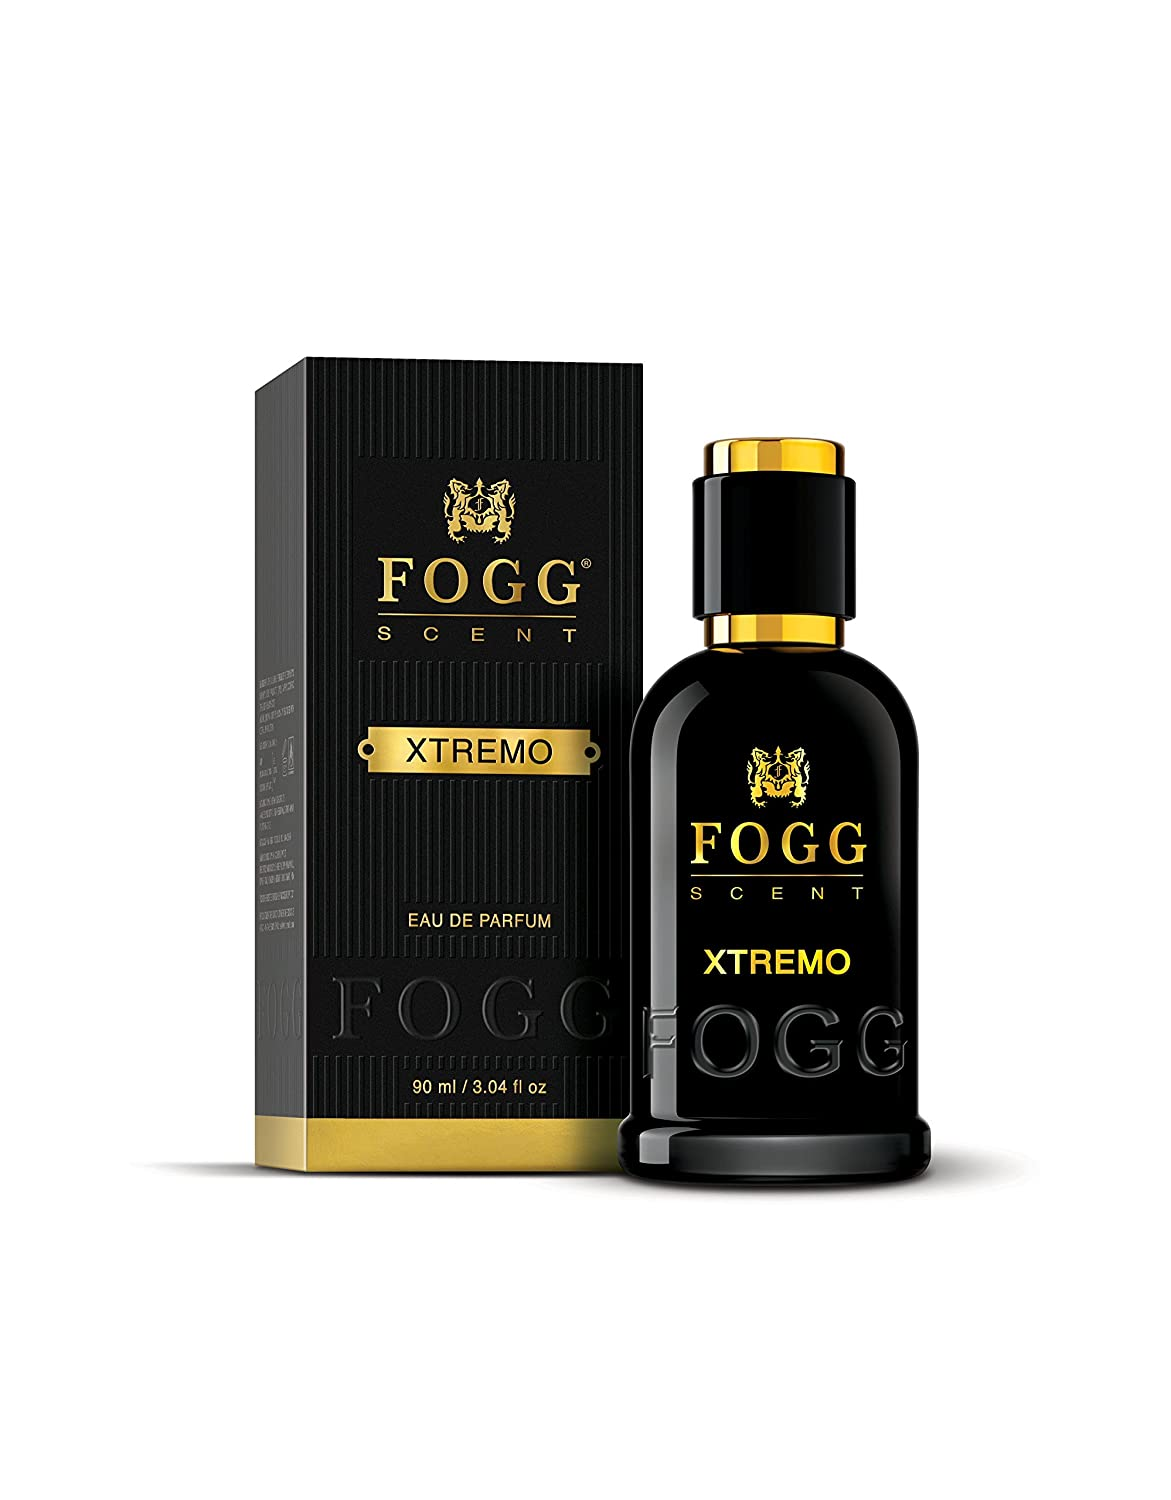 Fogg Xtremo Scent For Men.